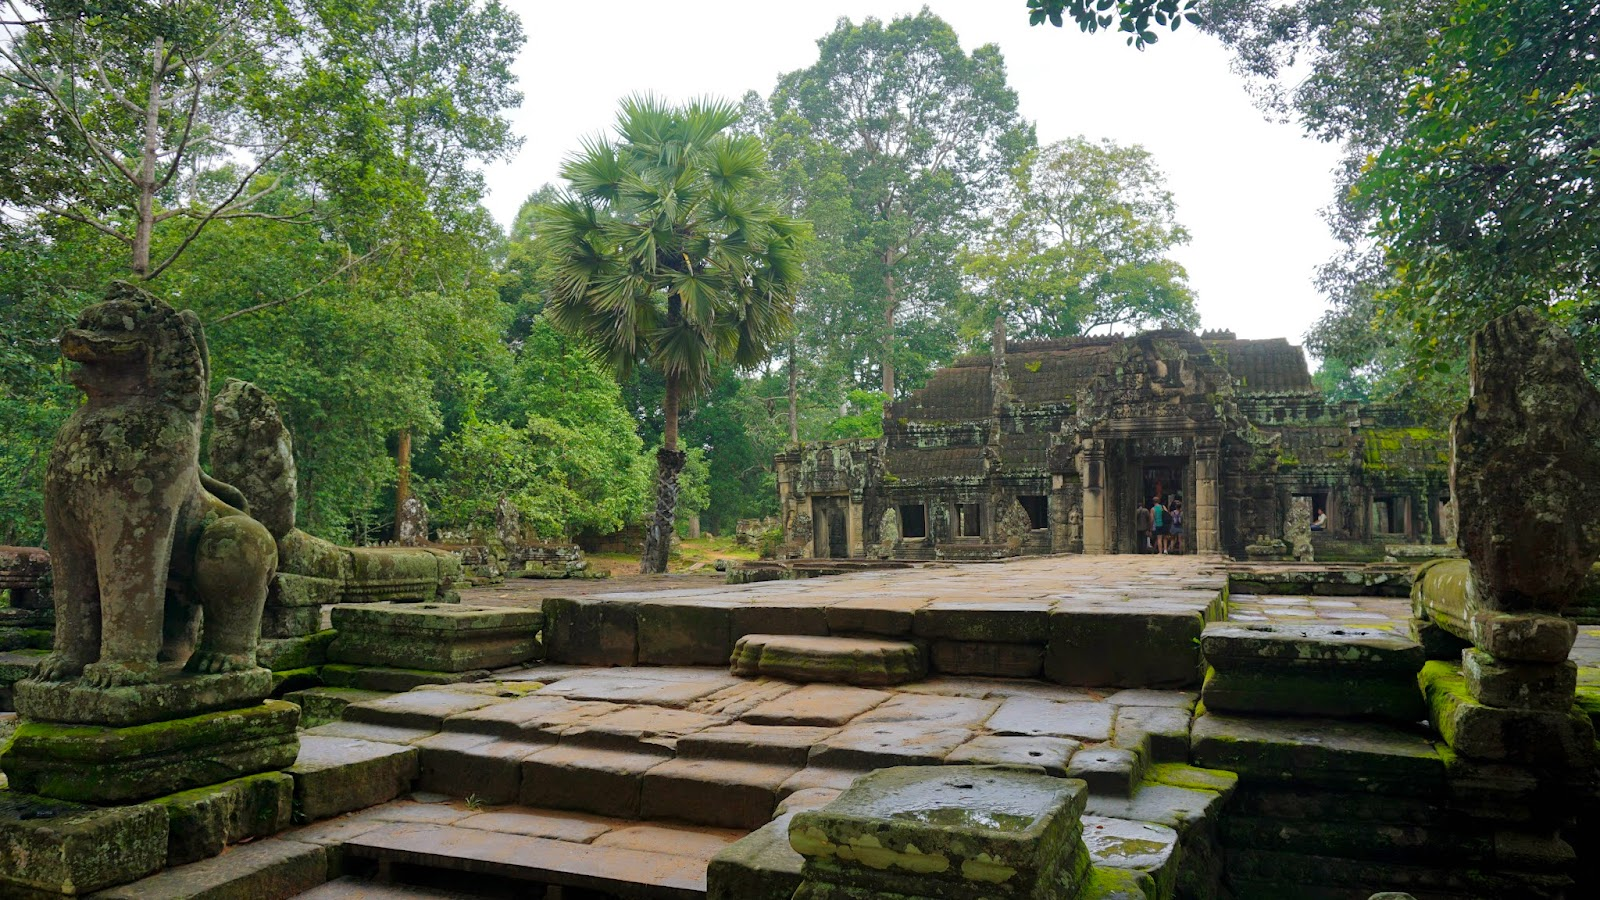 Banteay Kdei, located opposite Srah Srang, is another hidden gem worth visiting